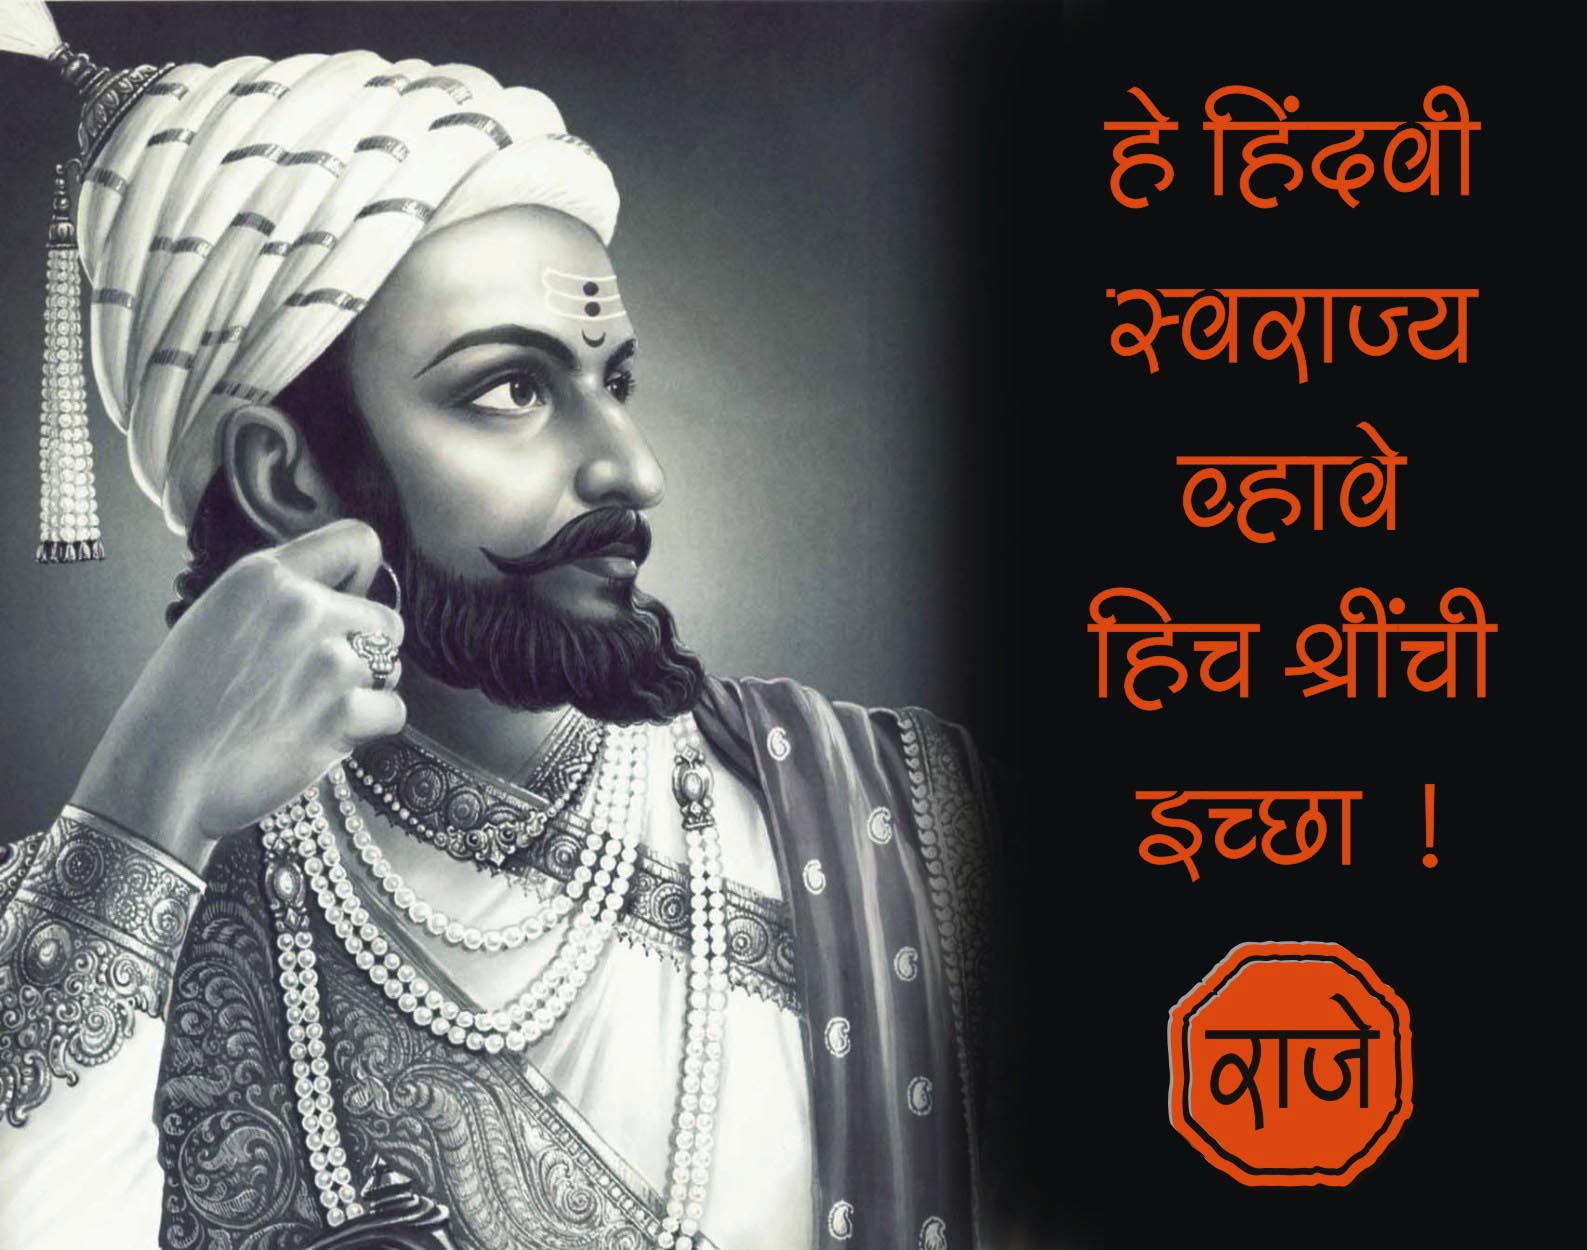 Wallpaper Shivaji Maharaj Hd Wallpaper